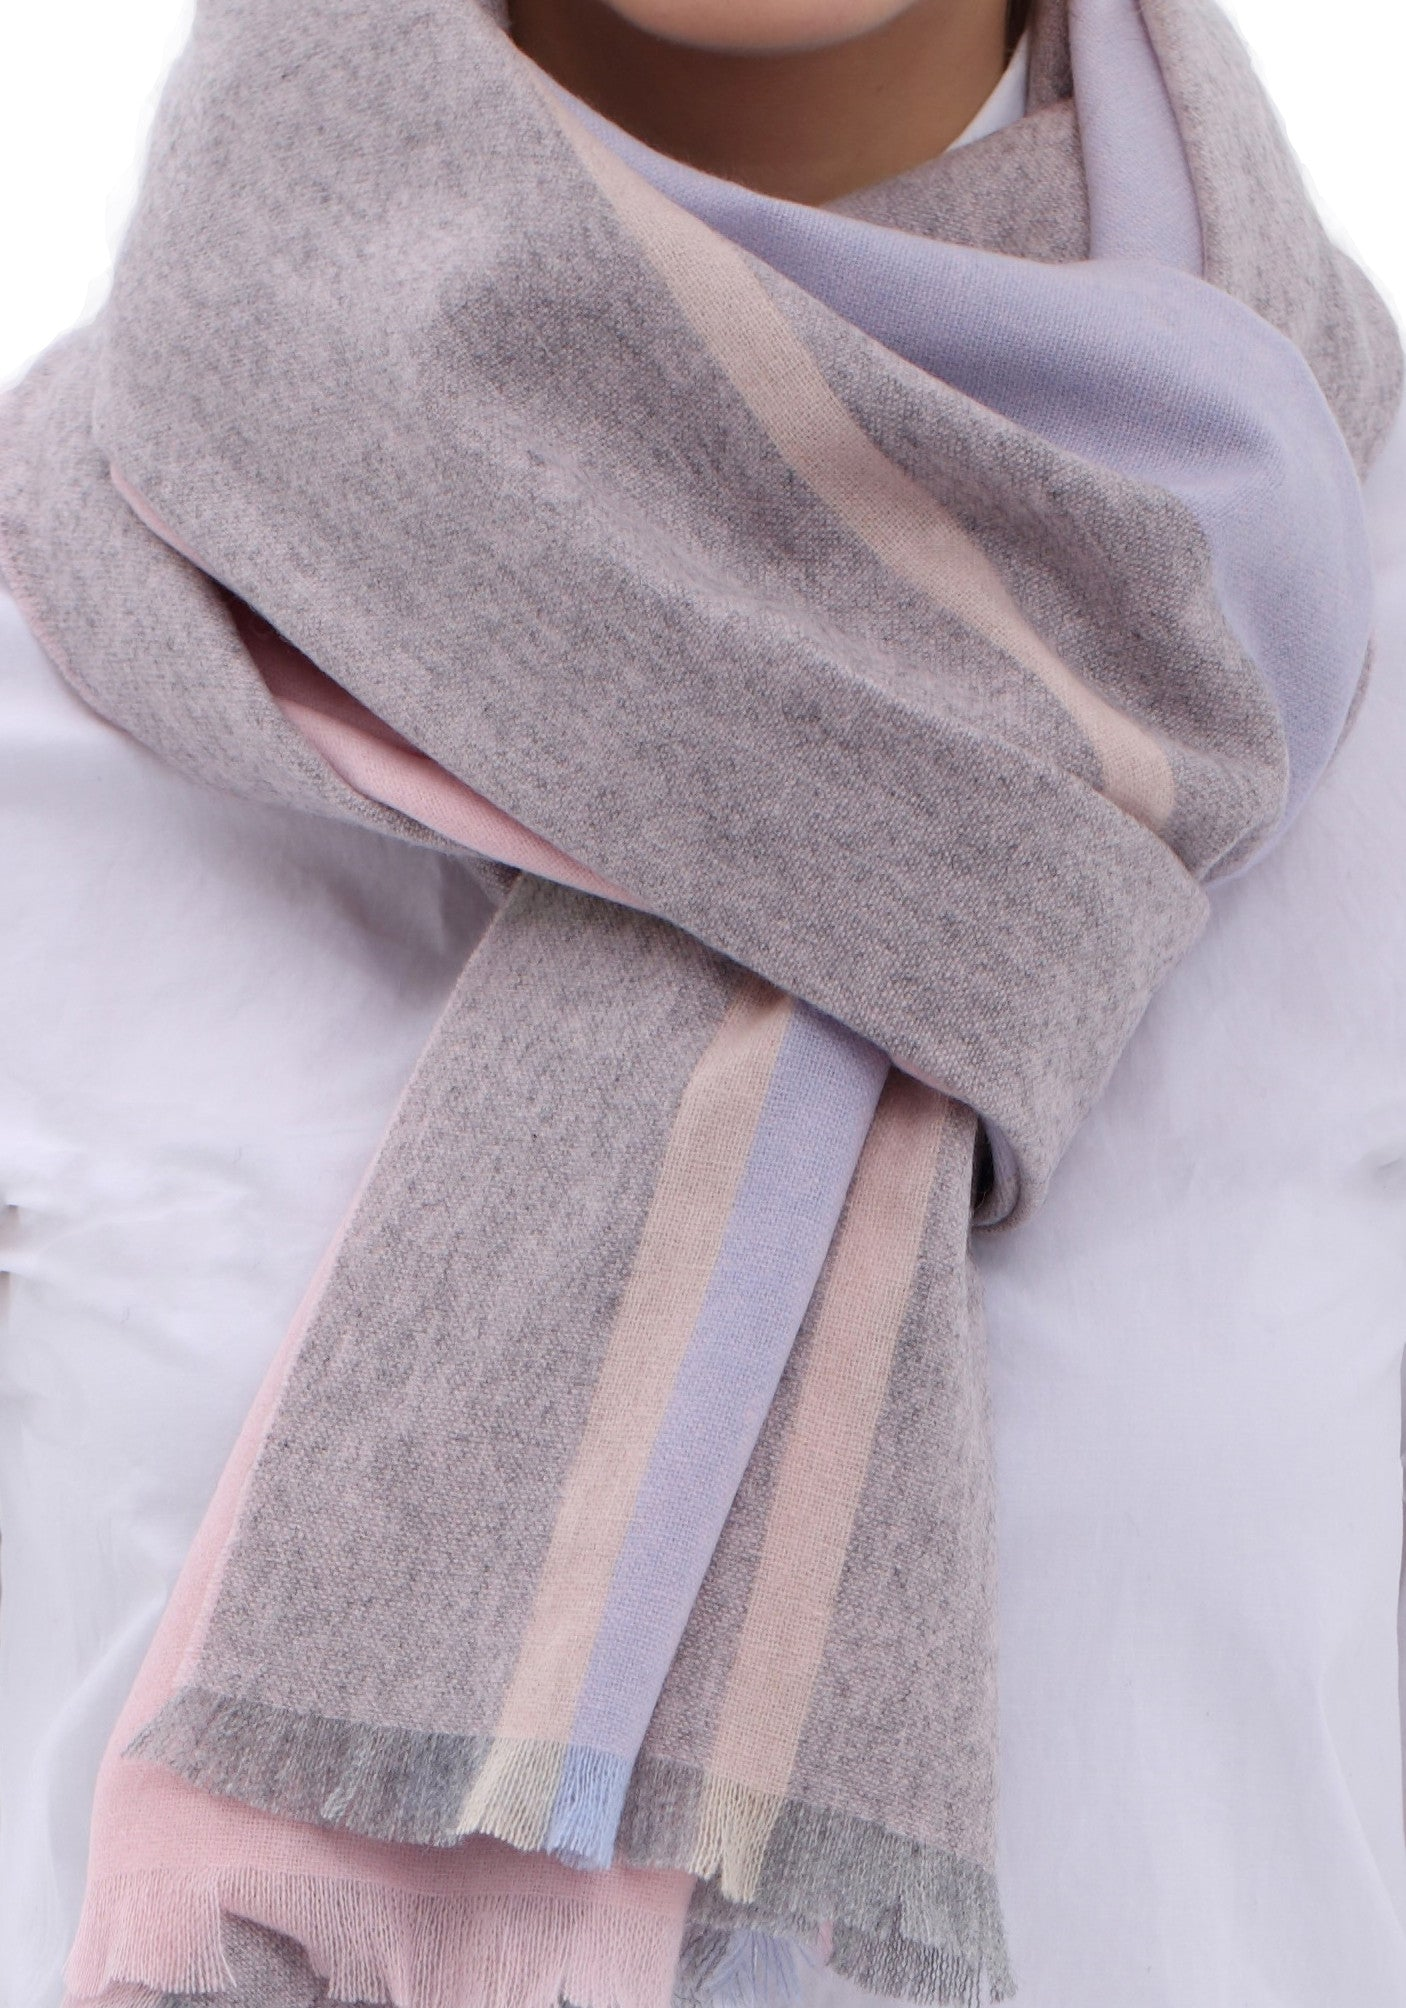 100% Cashmere Scarf for Women Winter Collection Pink & Grey